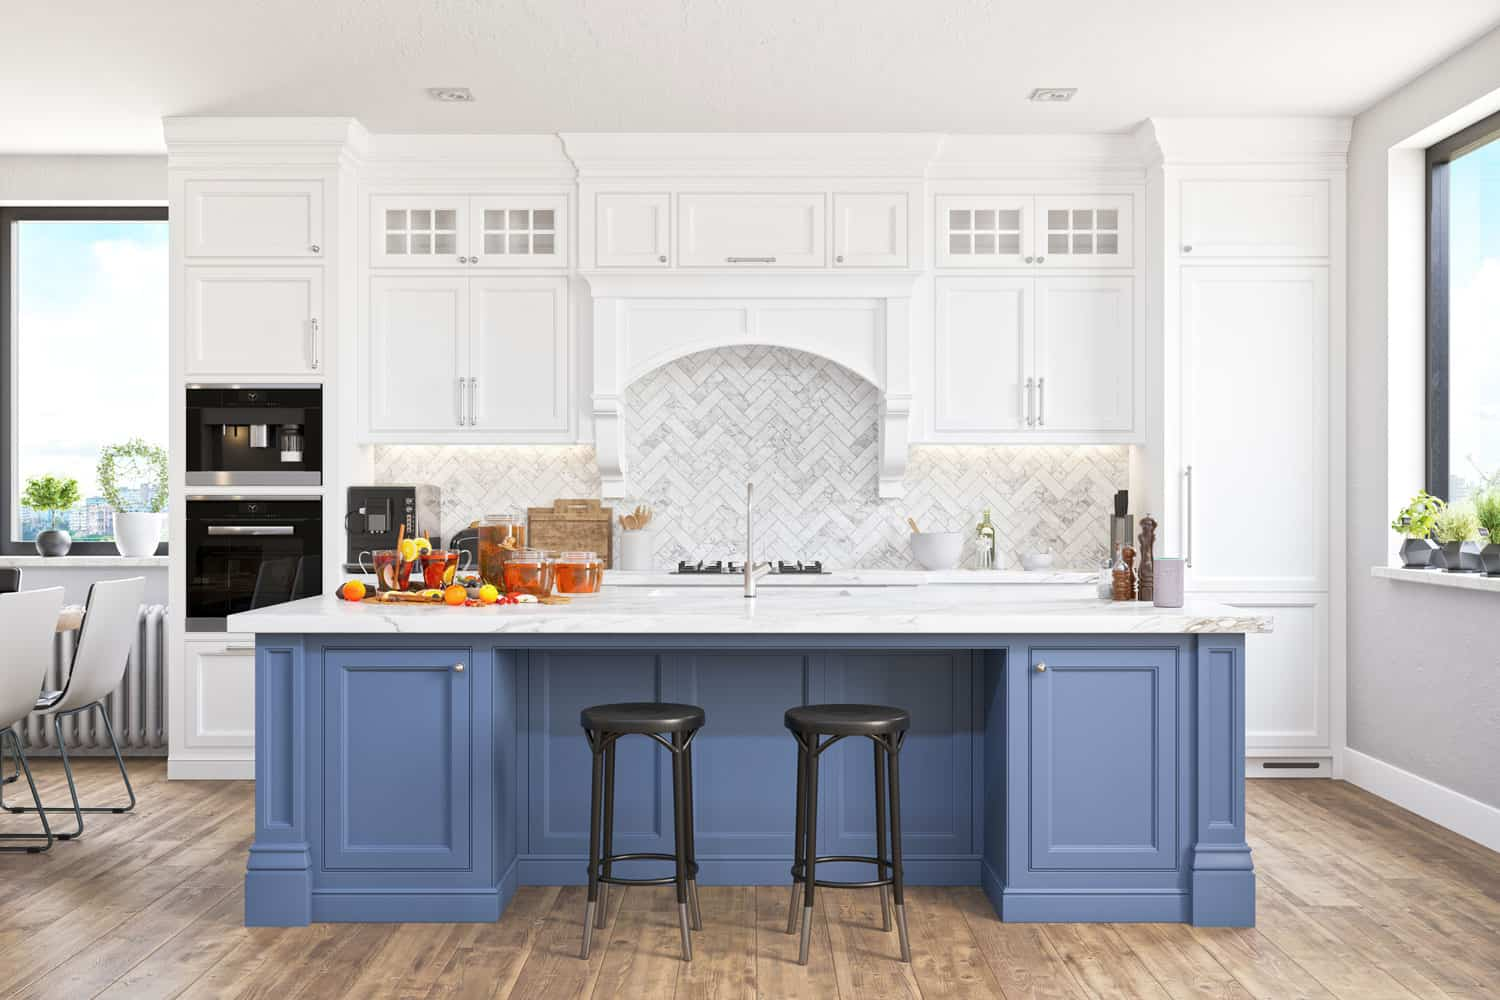 Modern Kitchen With Smart Speaker, Do Kitchen Cabinets Have To Be Symmetrical?